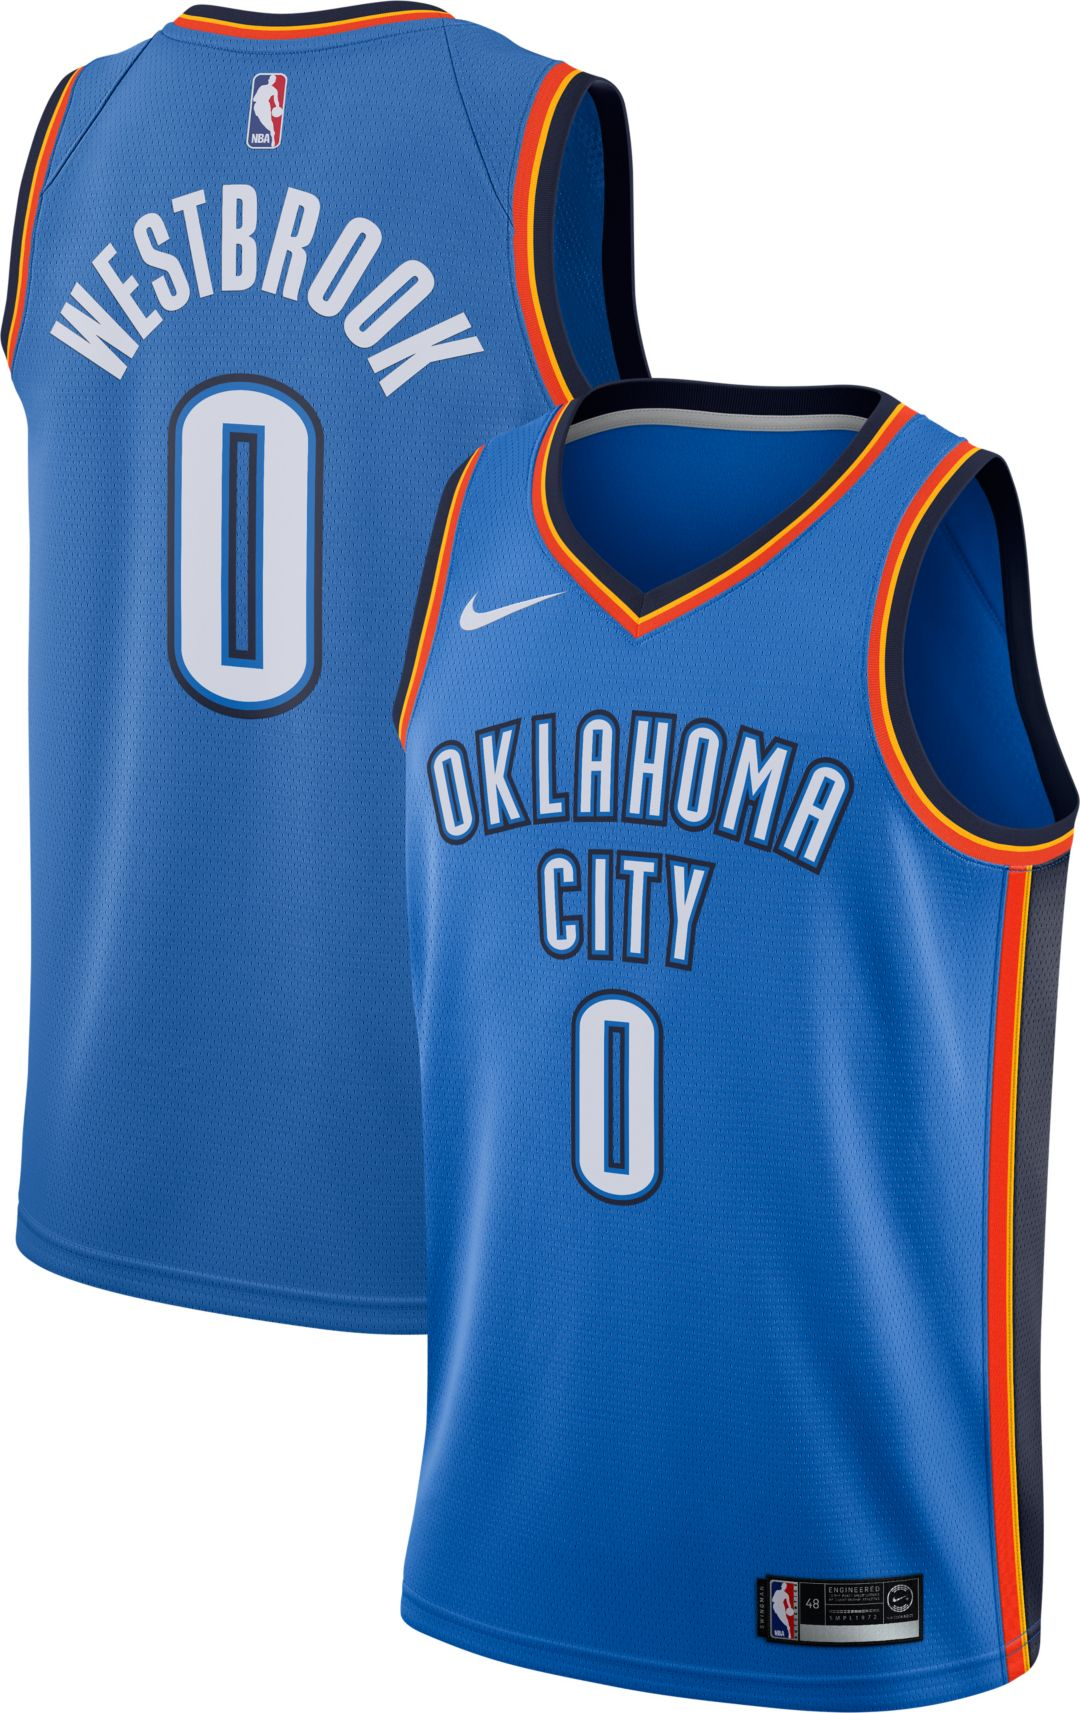 b873a5ff4b835 Nike Men's Oklahoma City Thunder Russell Westbrook #0 Blue Dri-FIT Swingman  Jersey. noImageFound. Previous